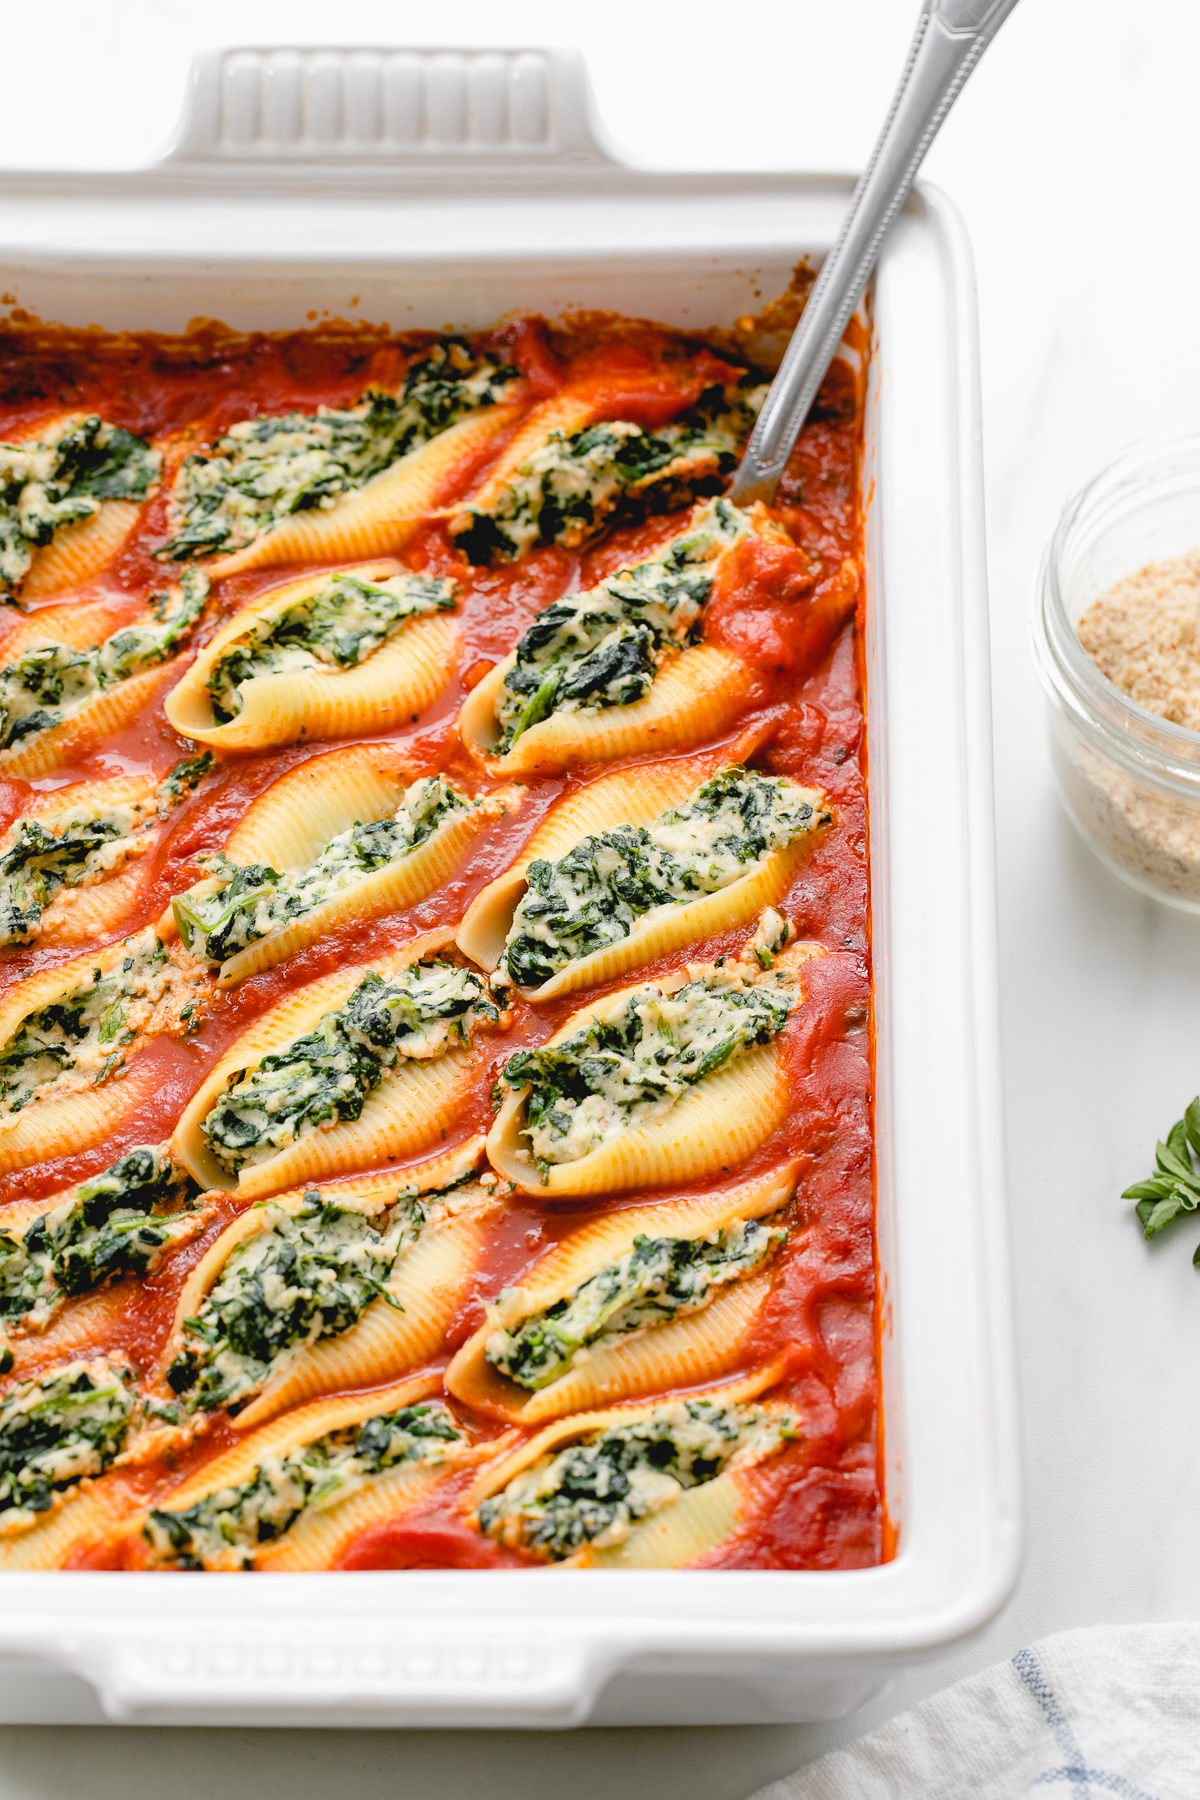 side angle view of vegan stuffed shells in a baking dish with items surrounding.